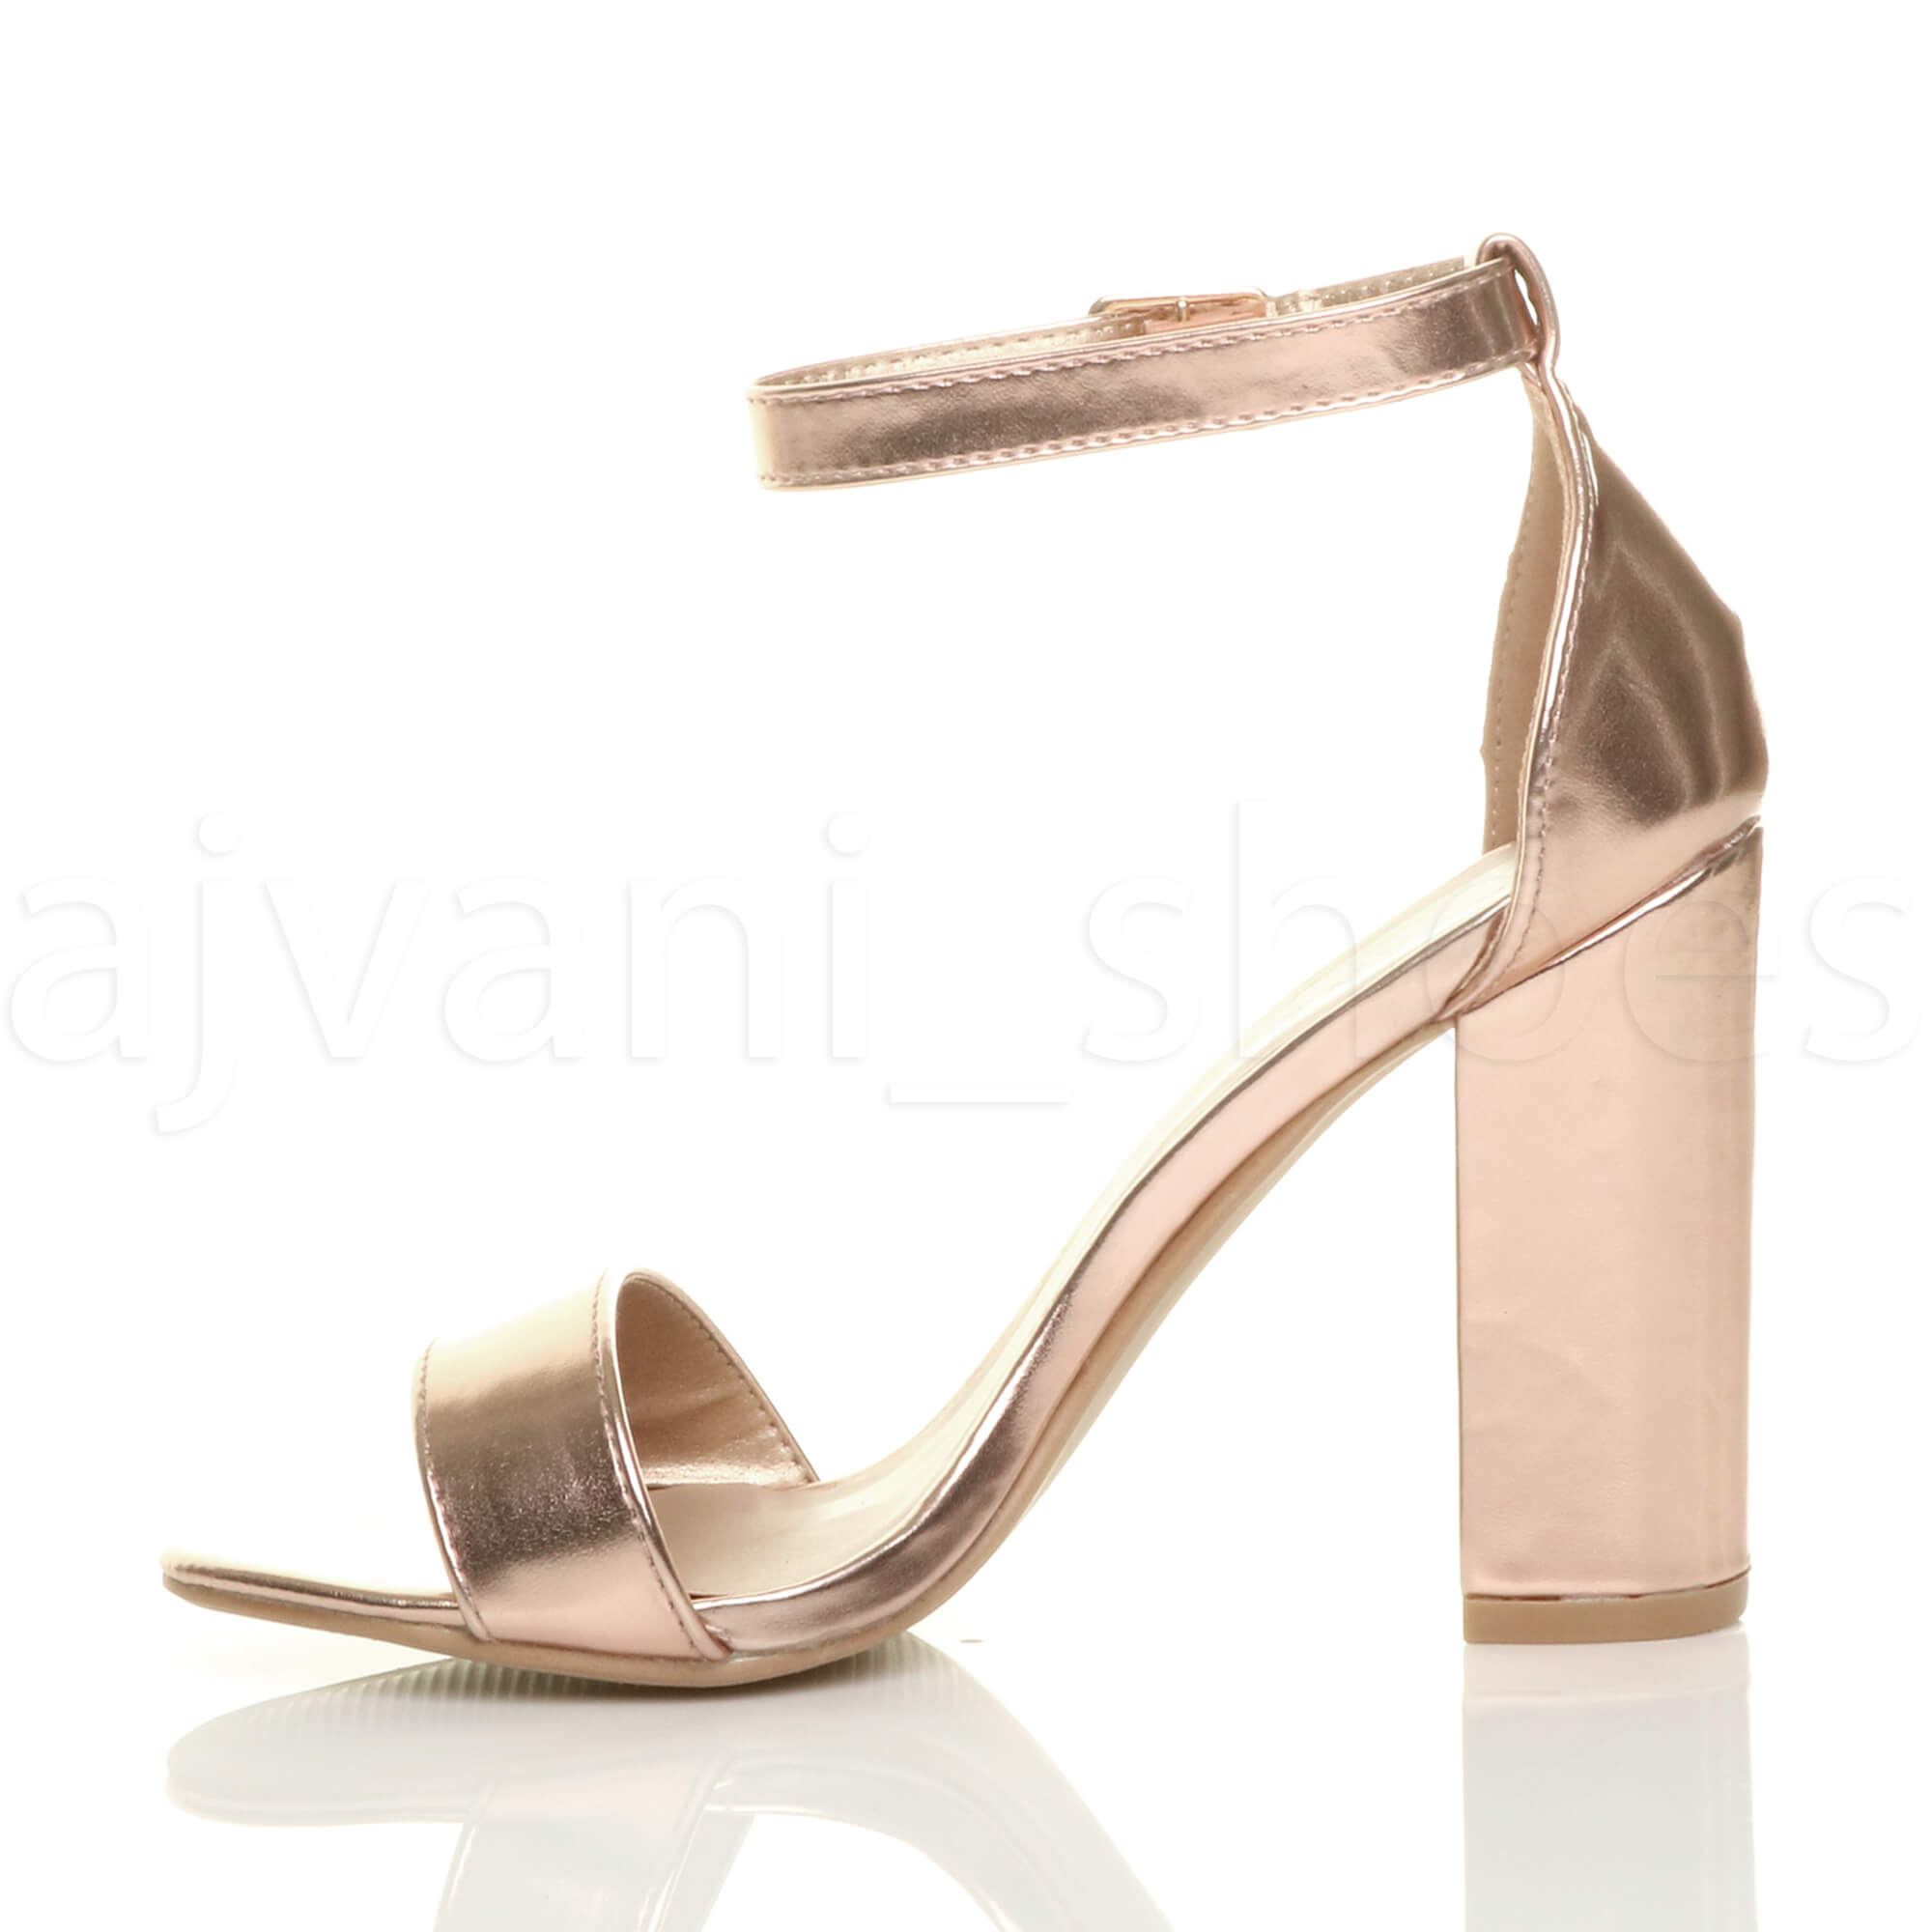 WOMENS-LADIES-BLOCK-HIGH-HEEL-ANKLE-STRAP-PEEP-TOE-STRAPPY-SANDALS-SHOES-SIZE thumbnail 133